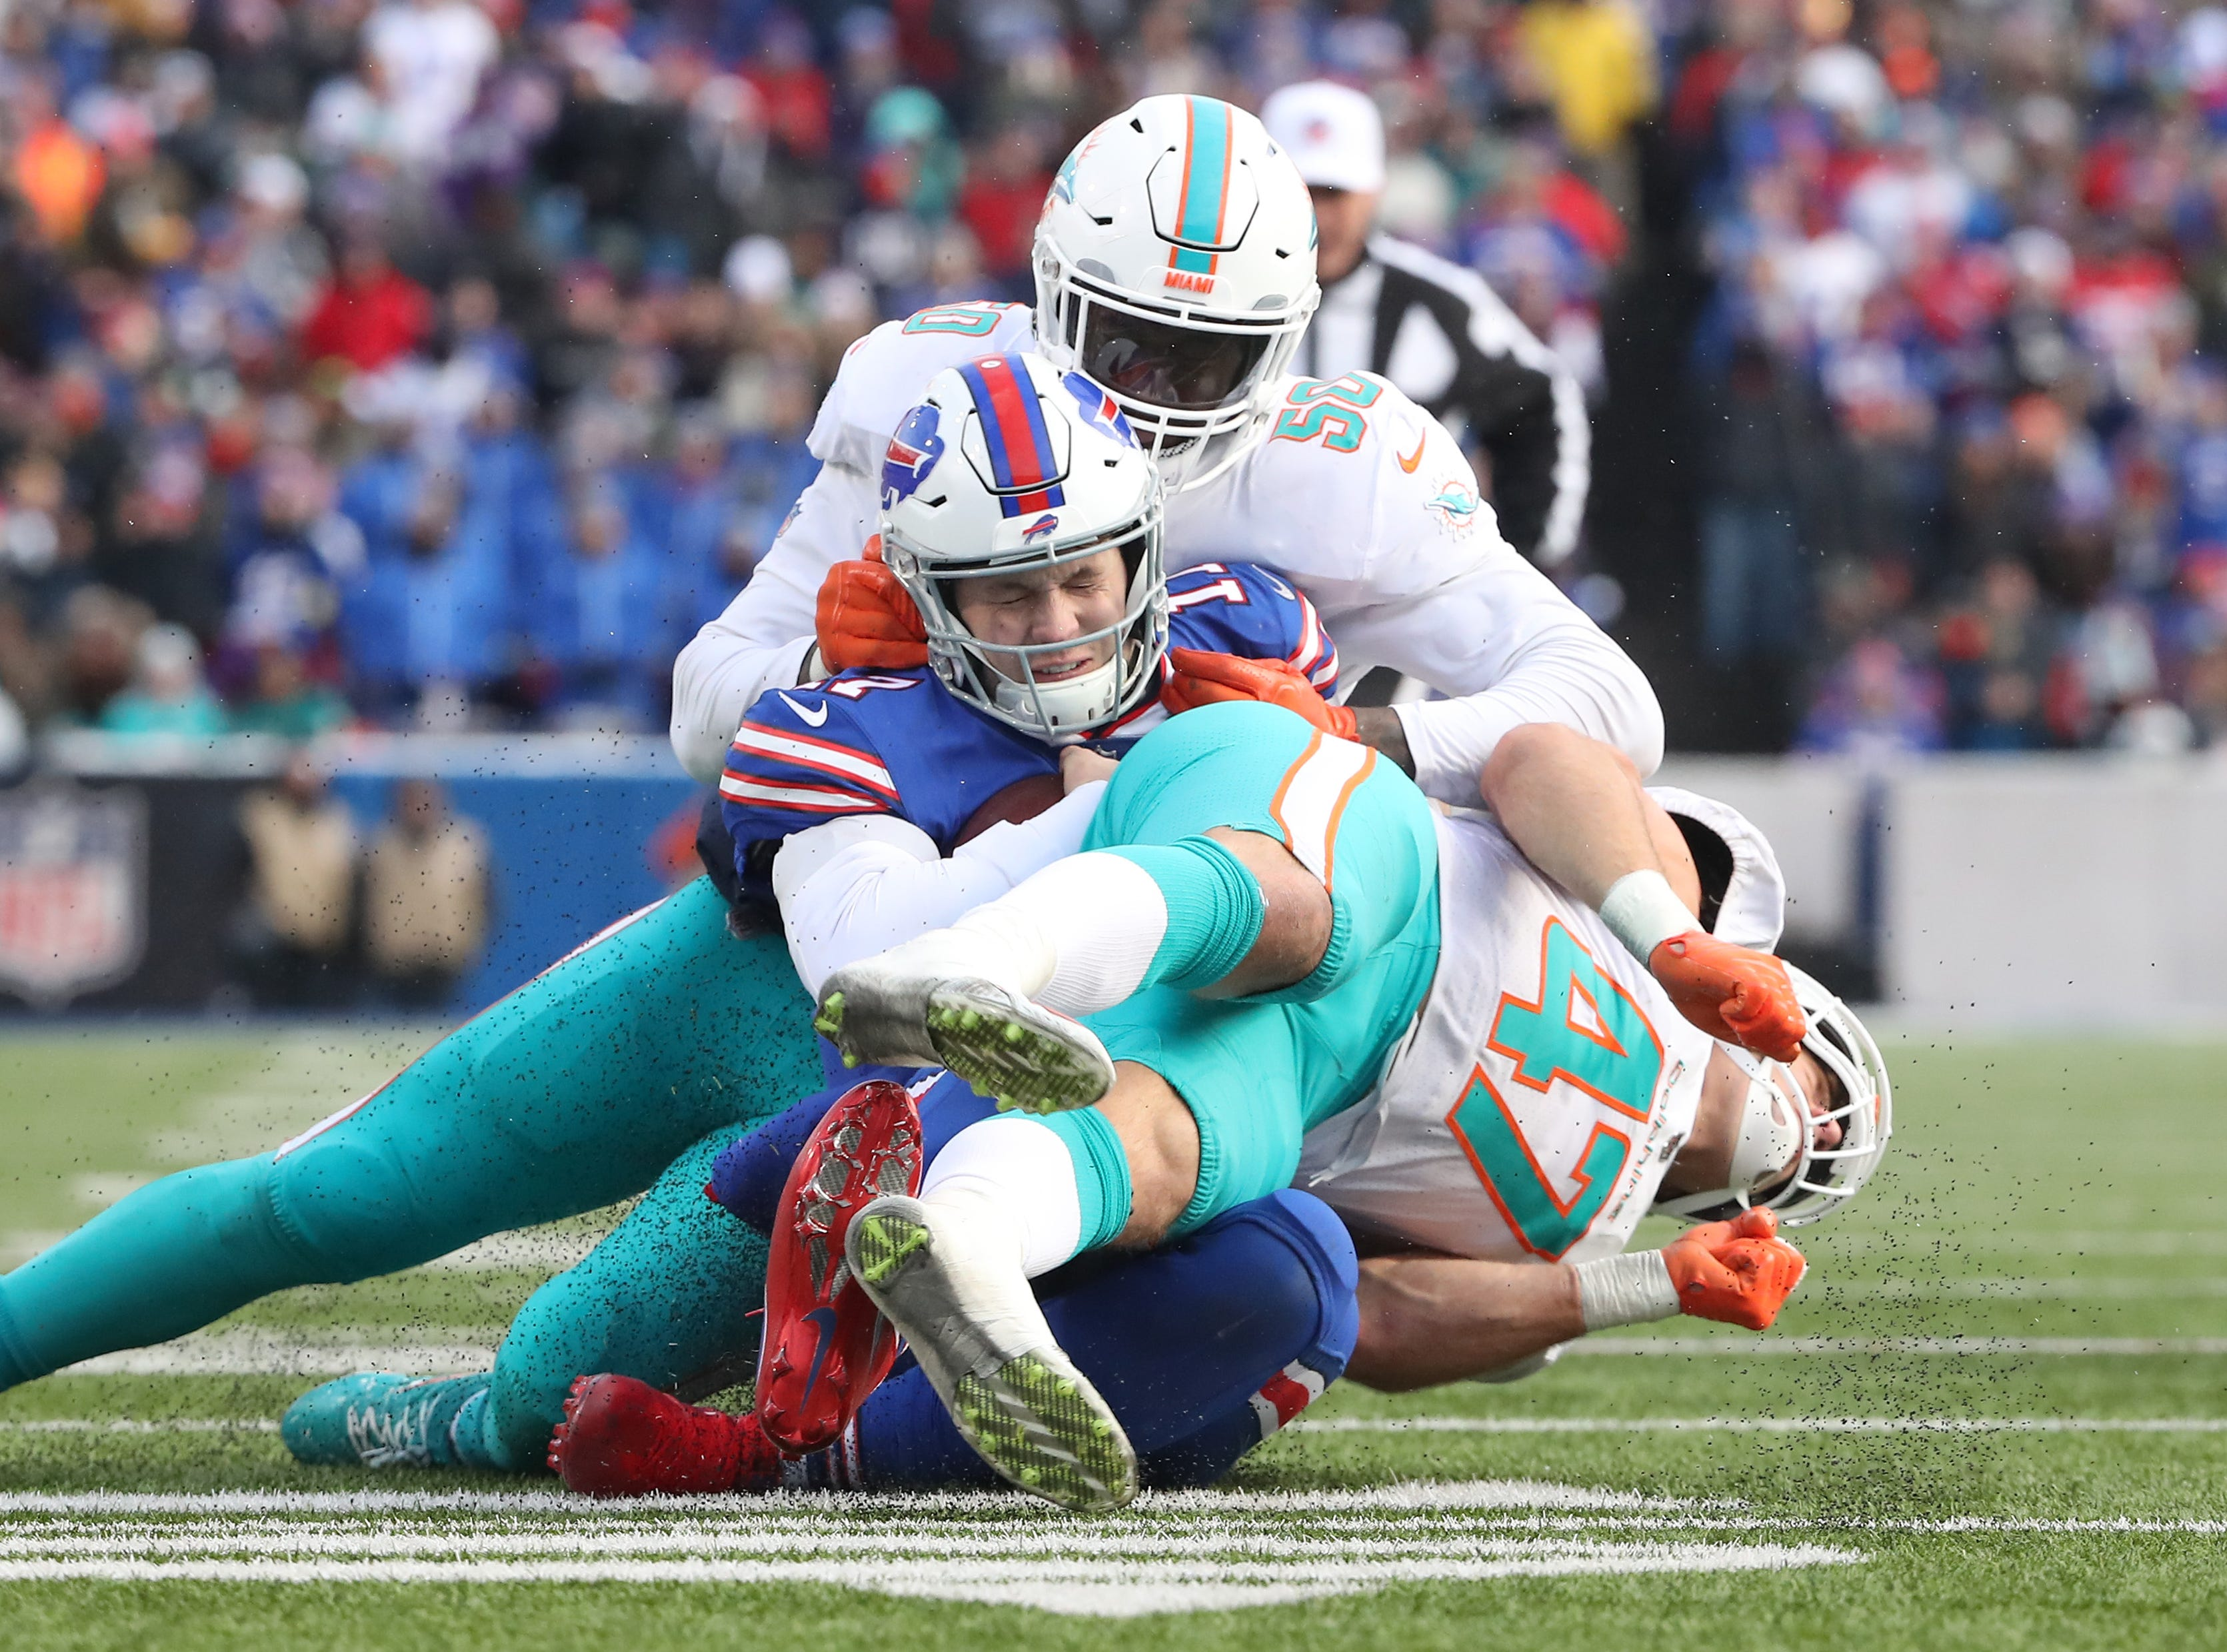 BUFFALO, NY - DECEMBER 30: Josh Allen #17 of the Buffalo Bills takes a late hit from Kiko Alonso #47 of the Miami Dolphins in the third quarter resulting in an unnecessary roughness penalty and a game ejection during NFL game action at New Era Field on December 30, 2018 in Buffalo, New York. (Photo by Tom Szczerbowski/Getty Images)